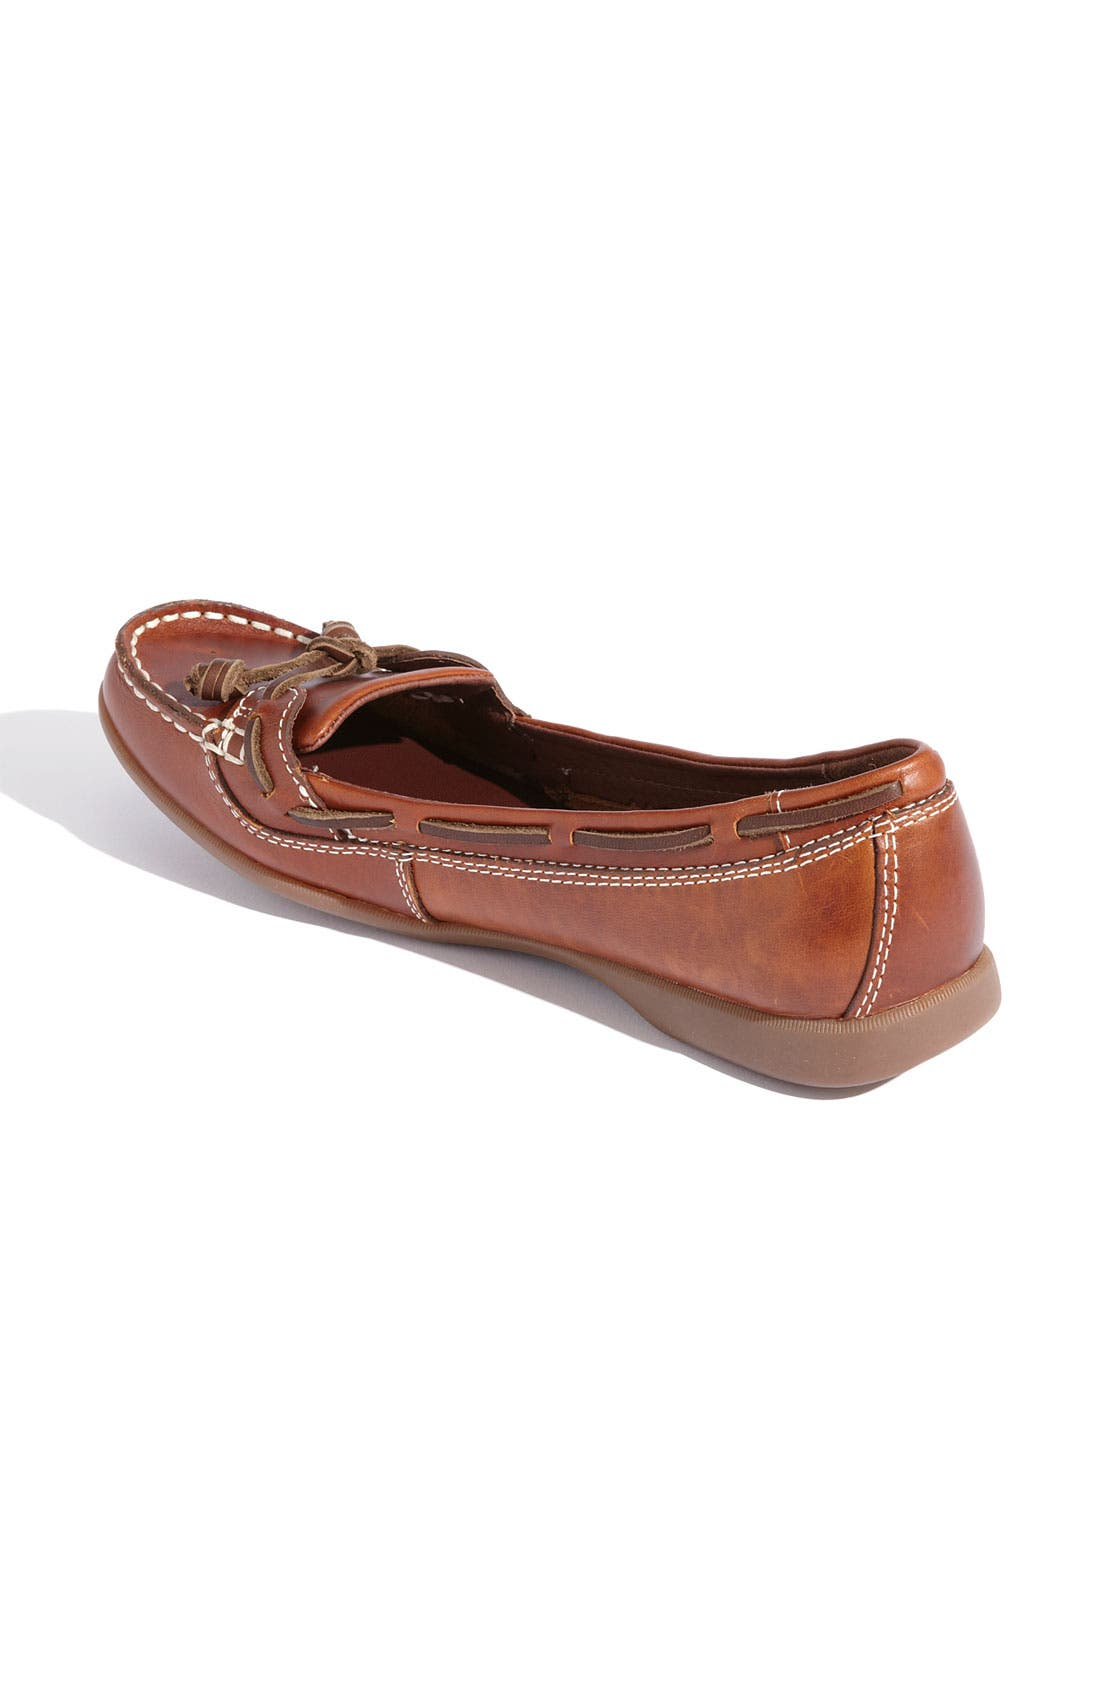 Alternate Image 2  - Sebago 'Felucca' Boat Shoe